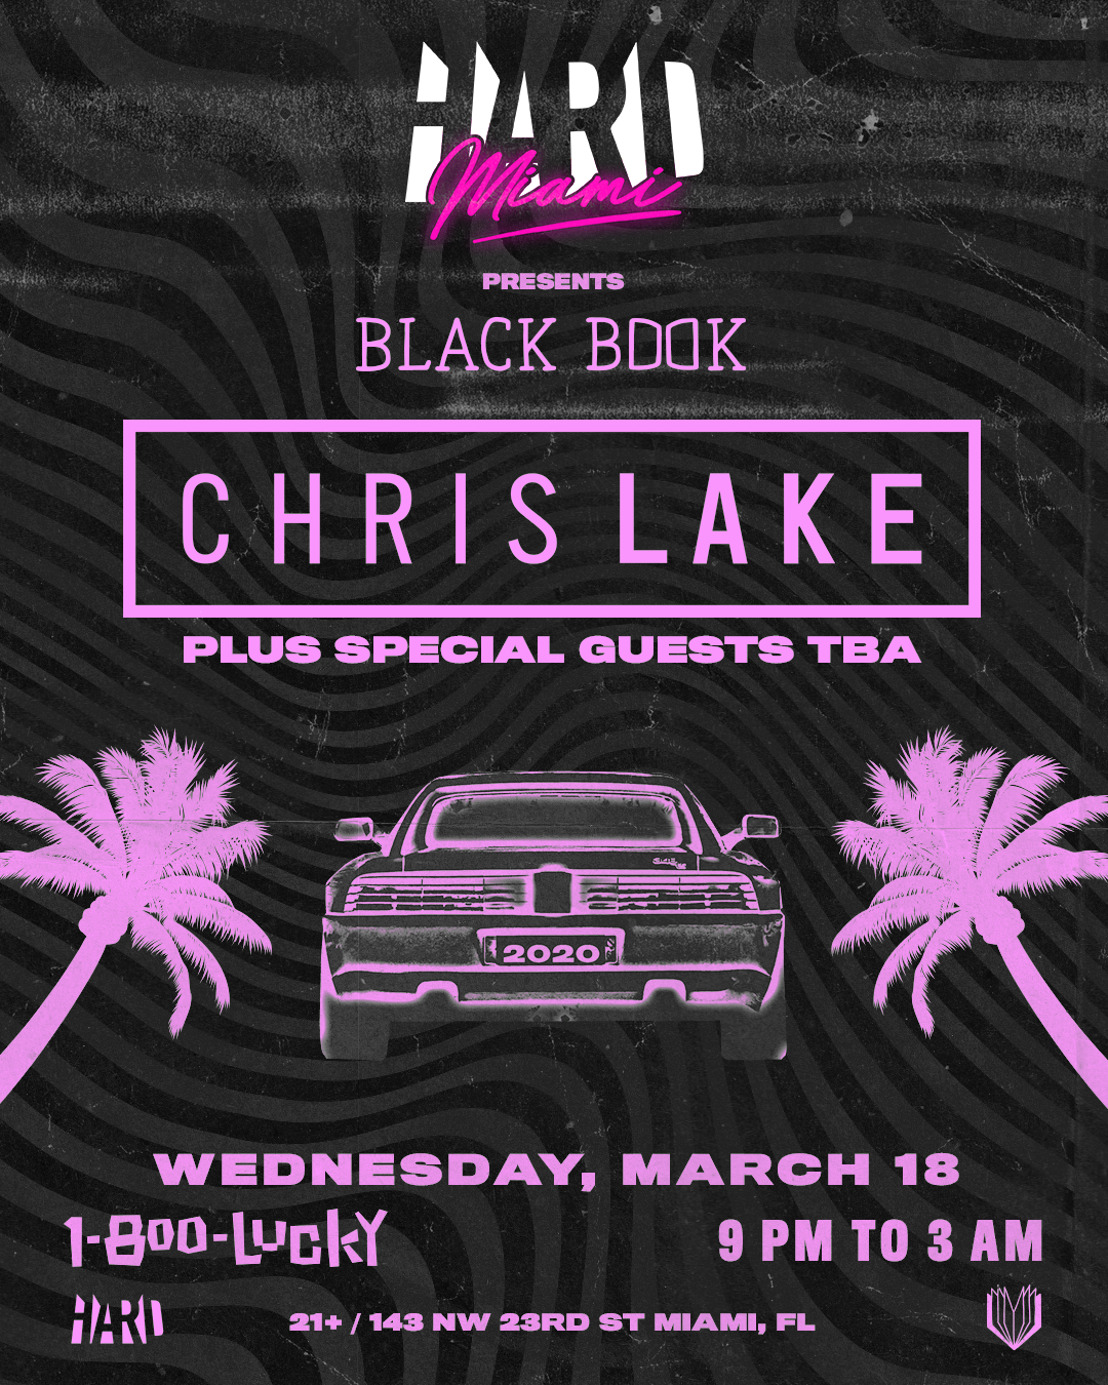 HARD Miami presents : Black Book Records Party with Chris Lake + Special Guests